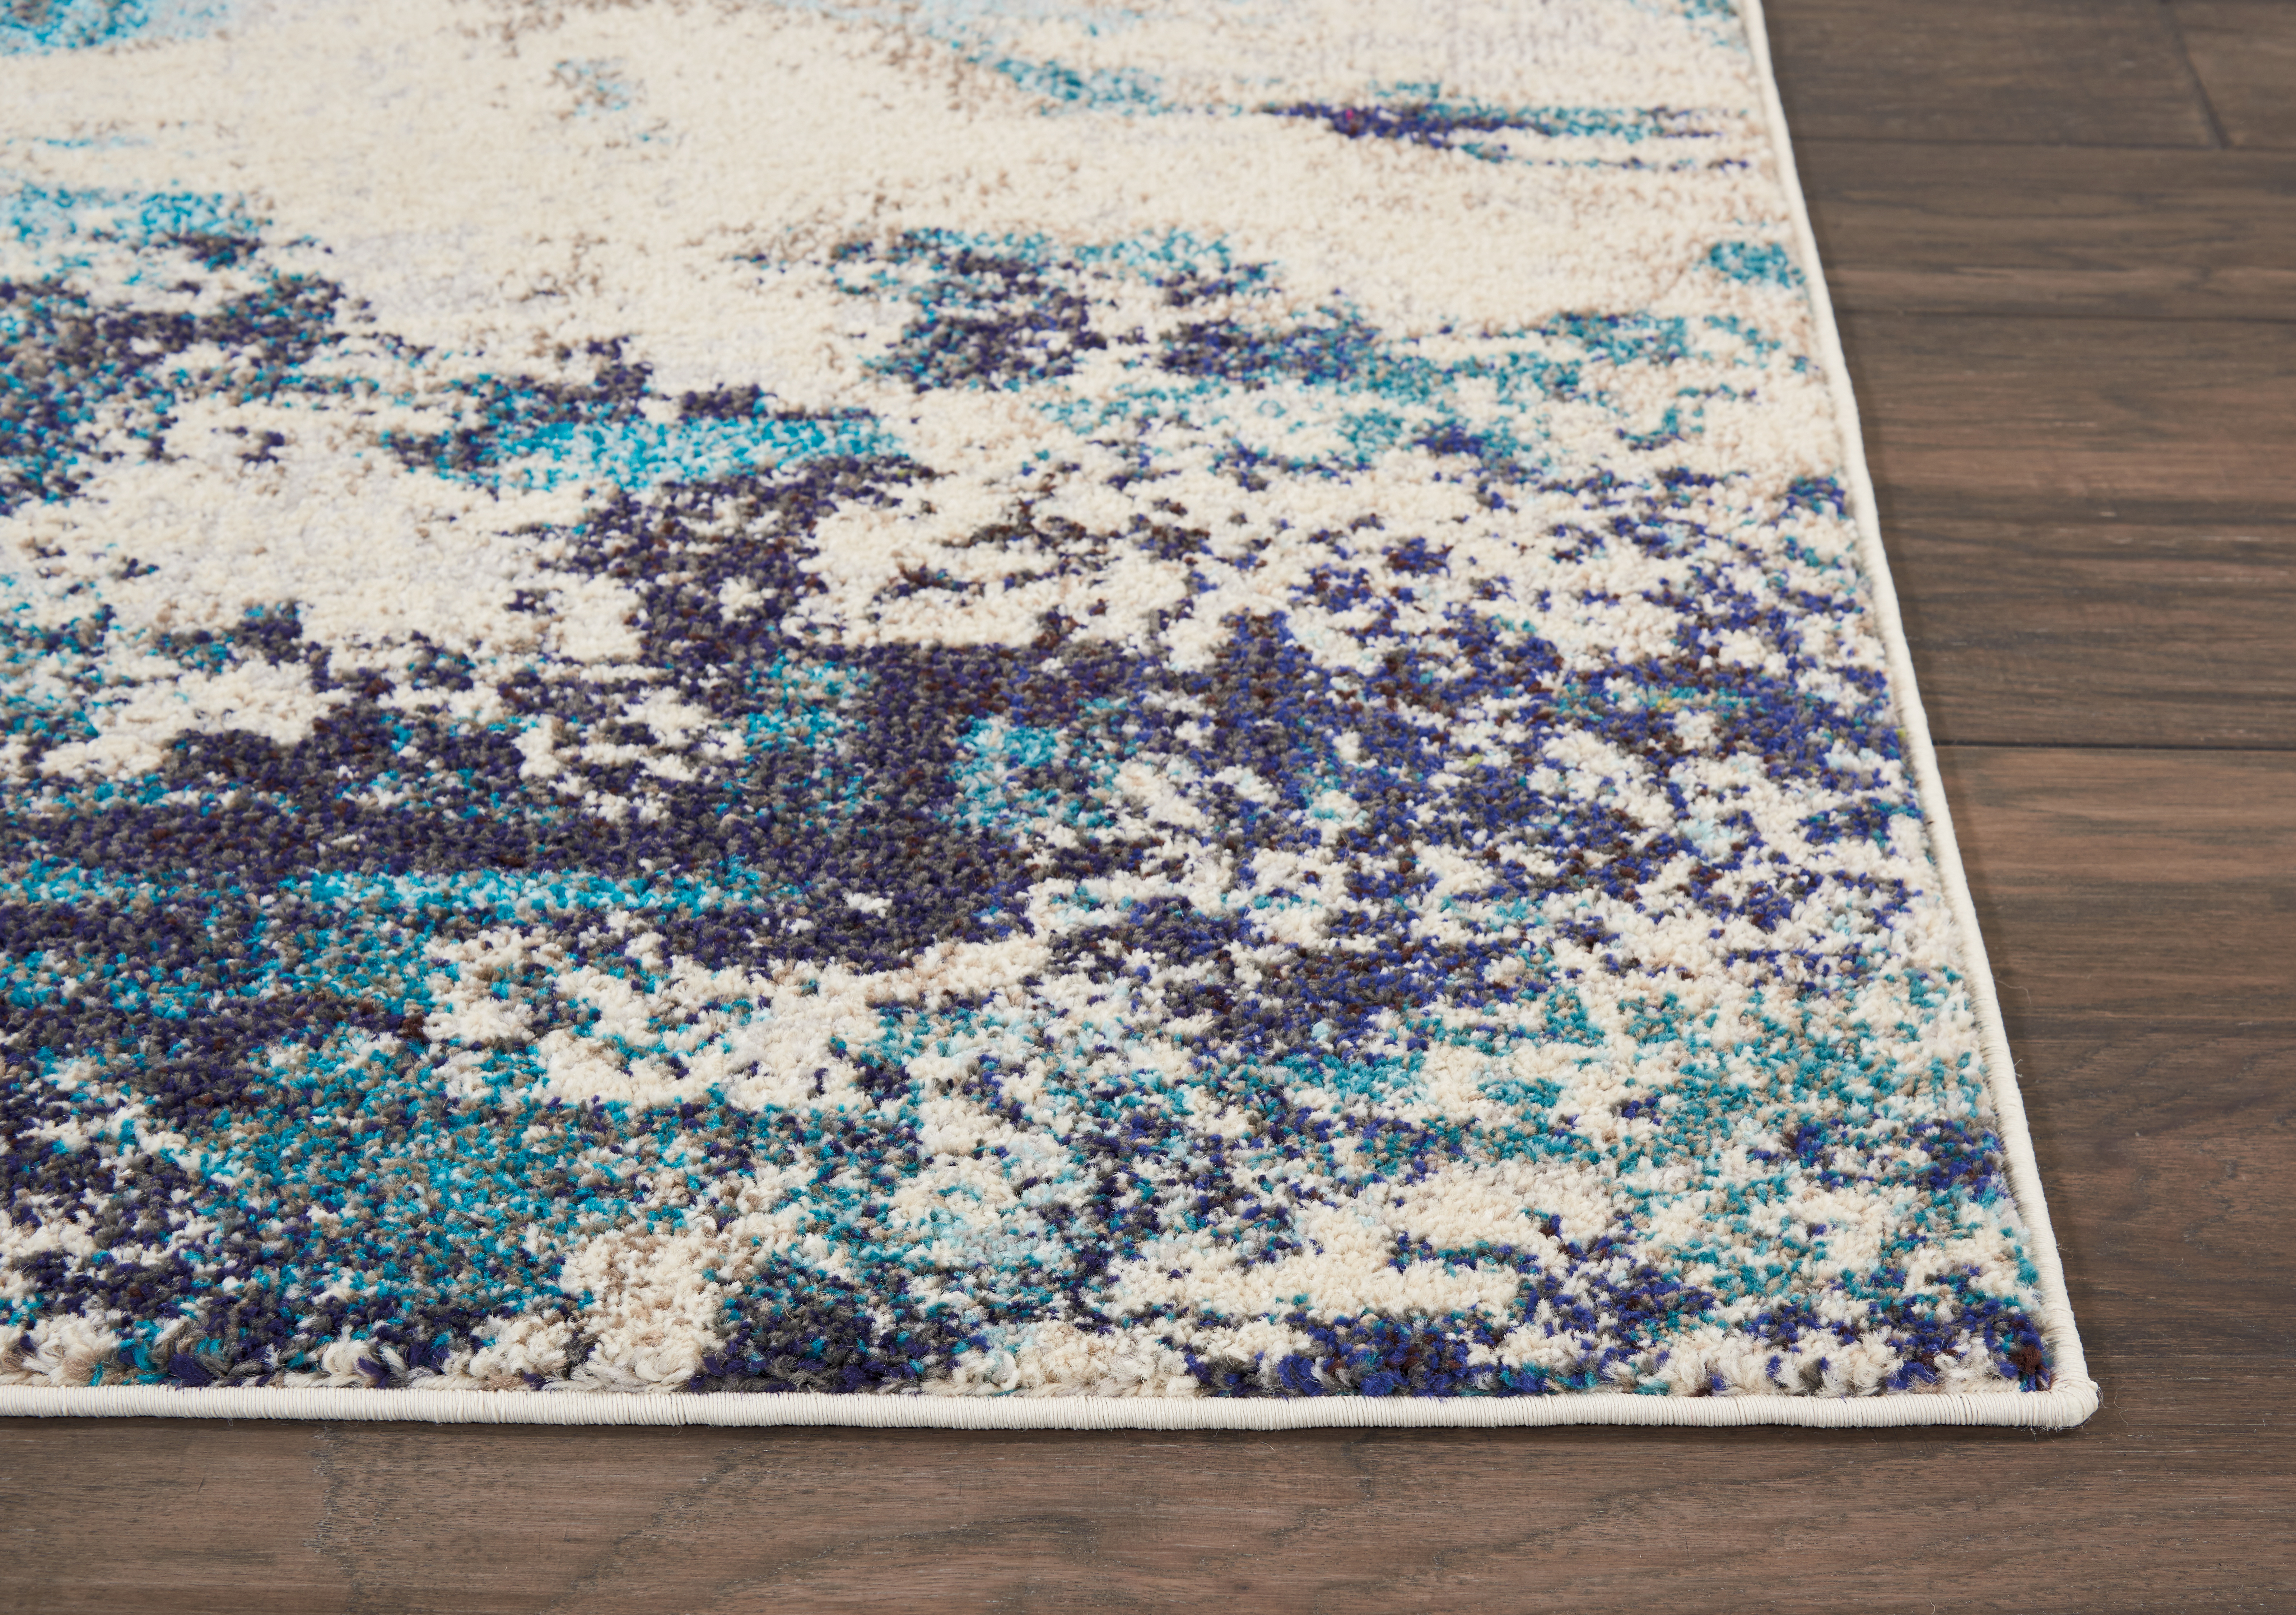 Teal Color Area Rugs Nourison Celestial Ivory Teal Blue Area Rug Ces02